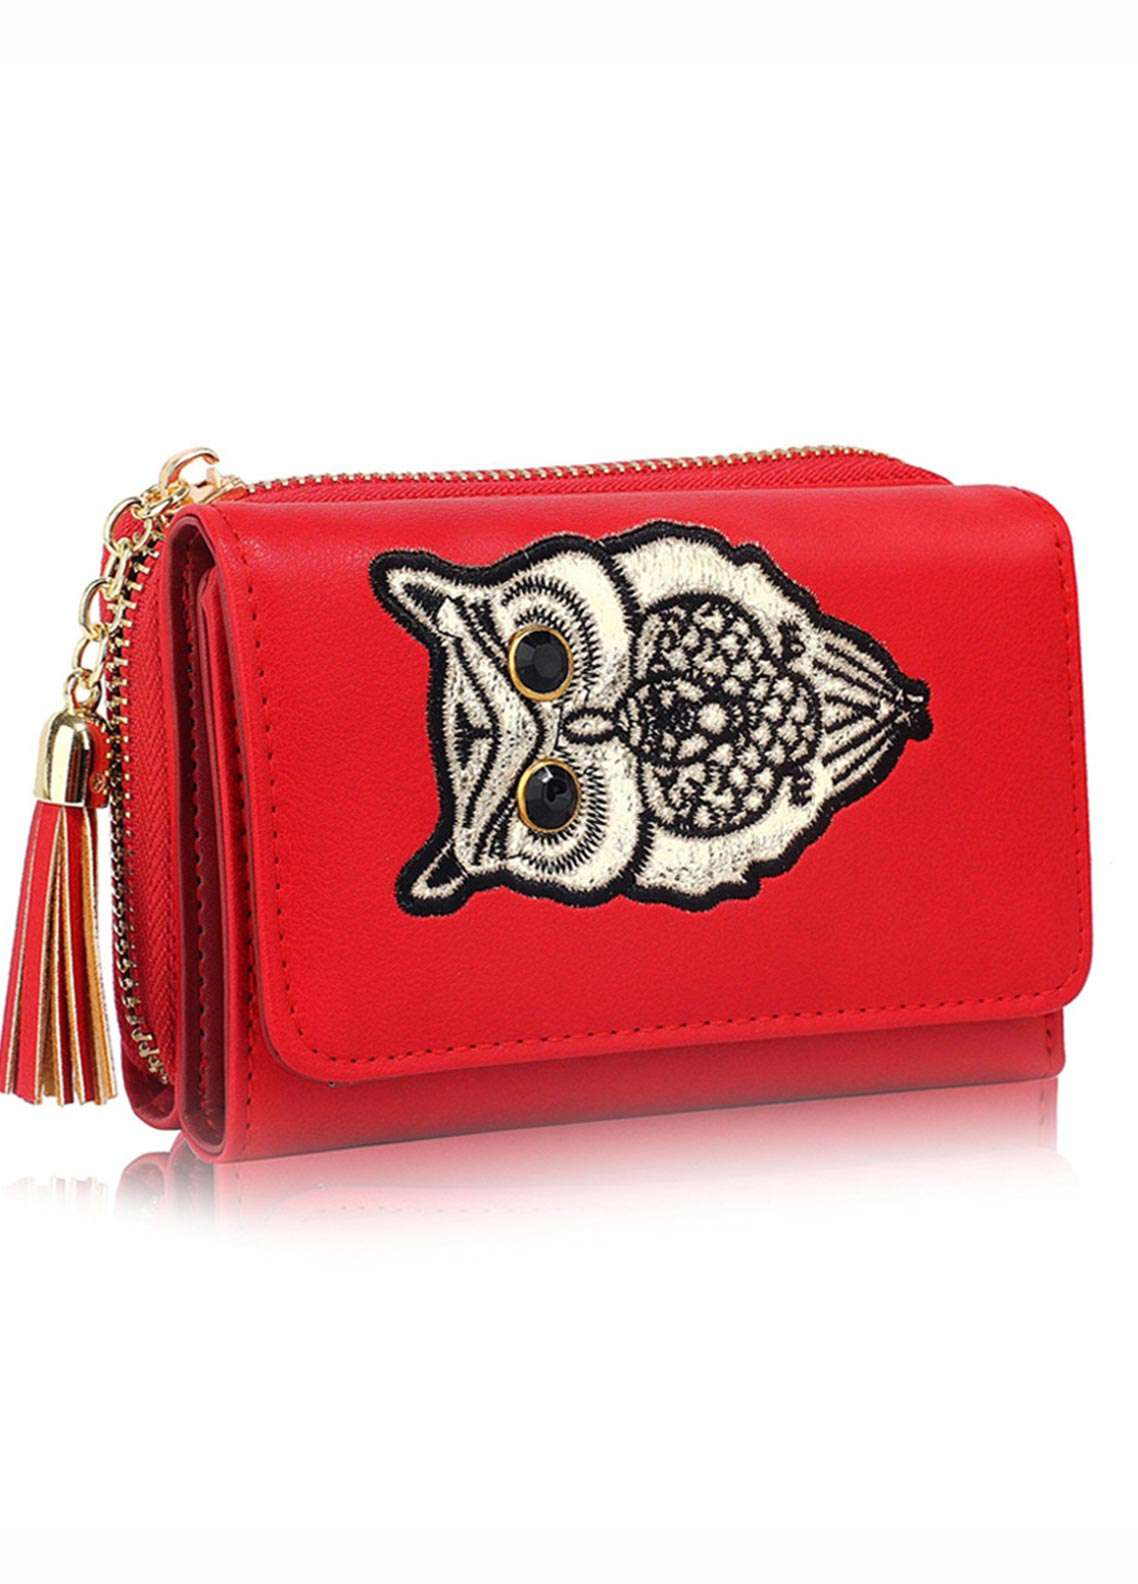 Anna Grace London Faux Leather Wallet   for Women  Red with Smooth Texture|Grainy